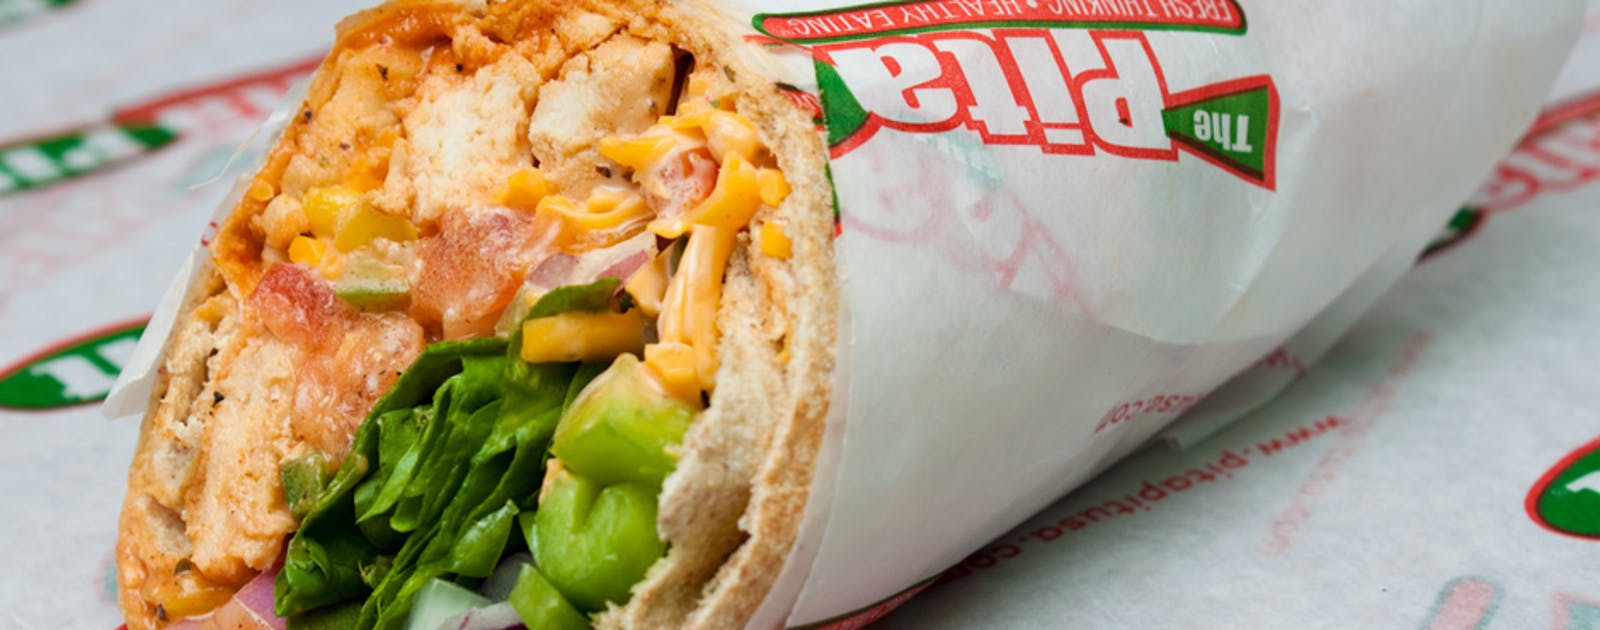 Pita Pit - Manly - Broome Tourism